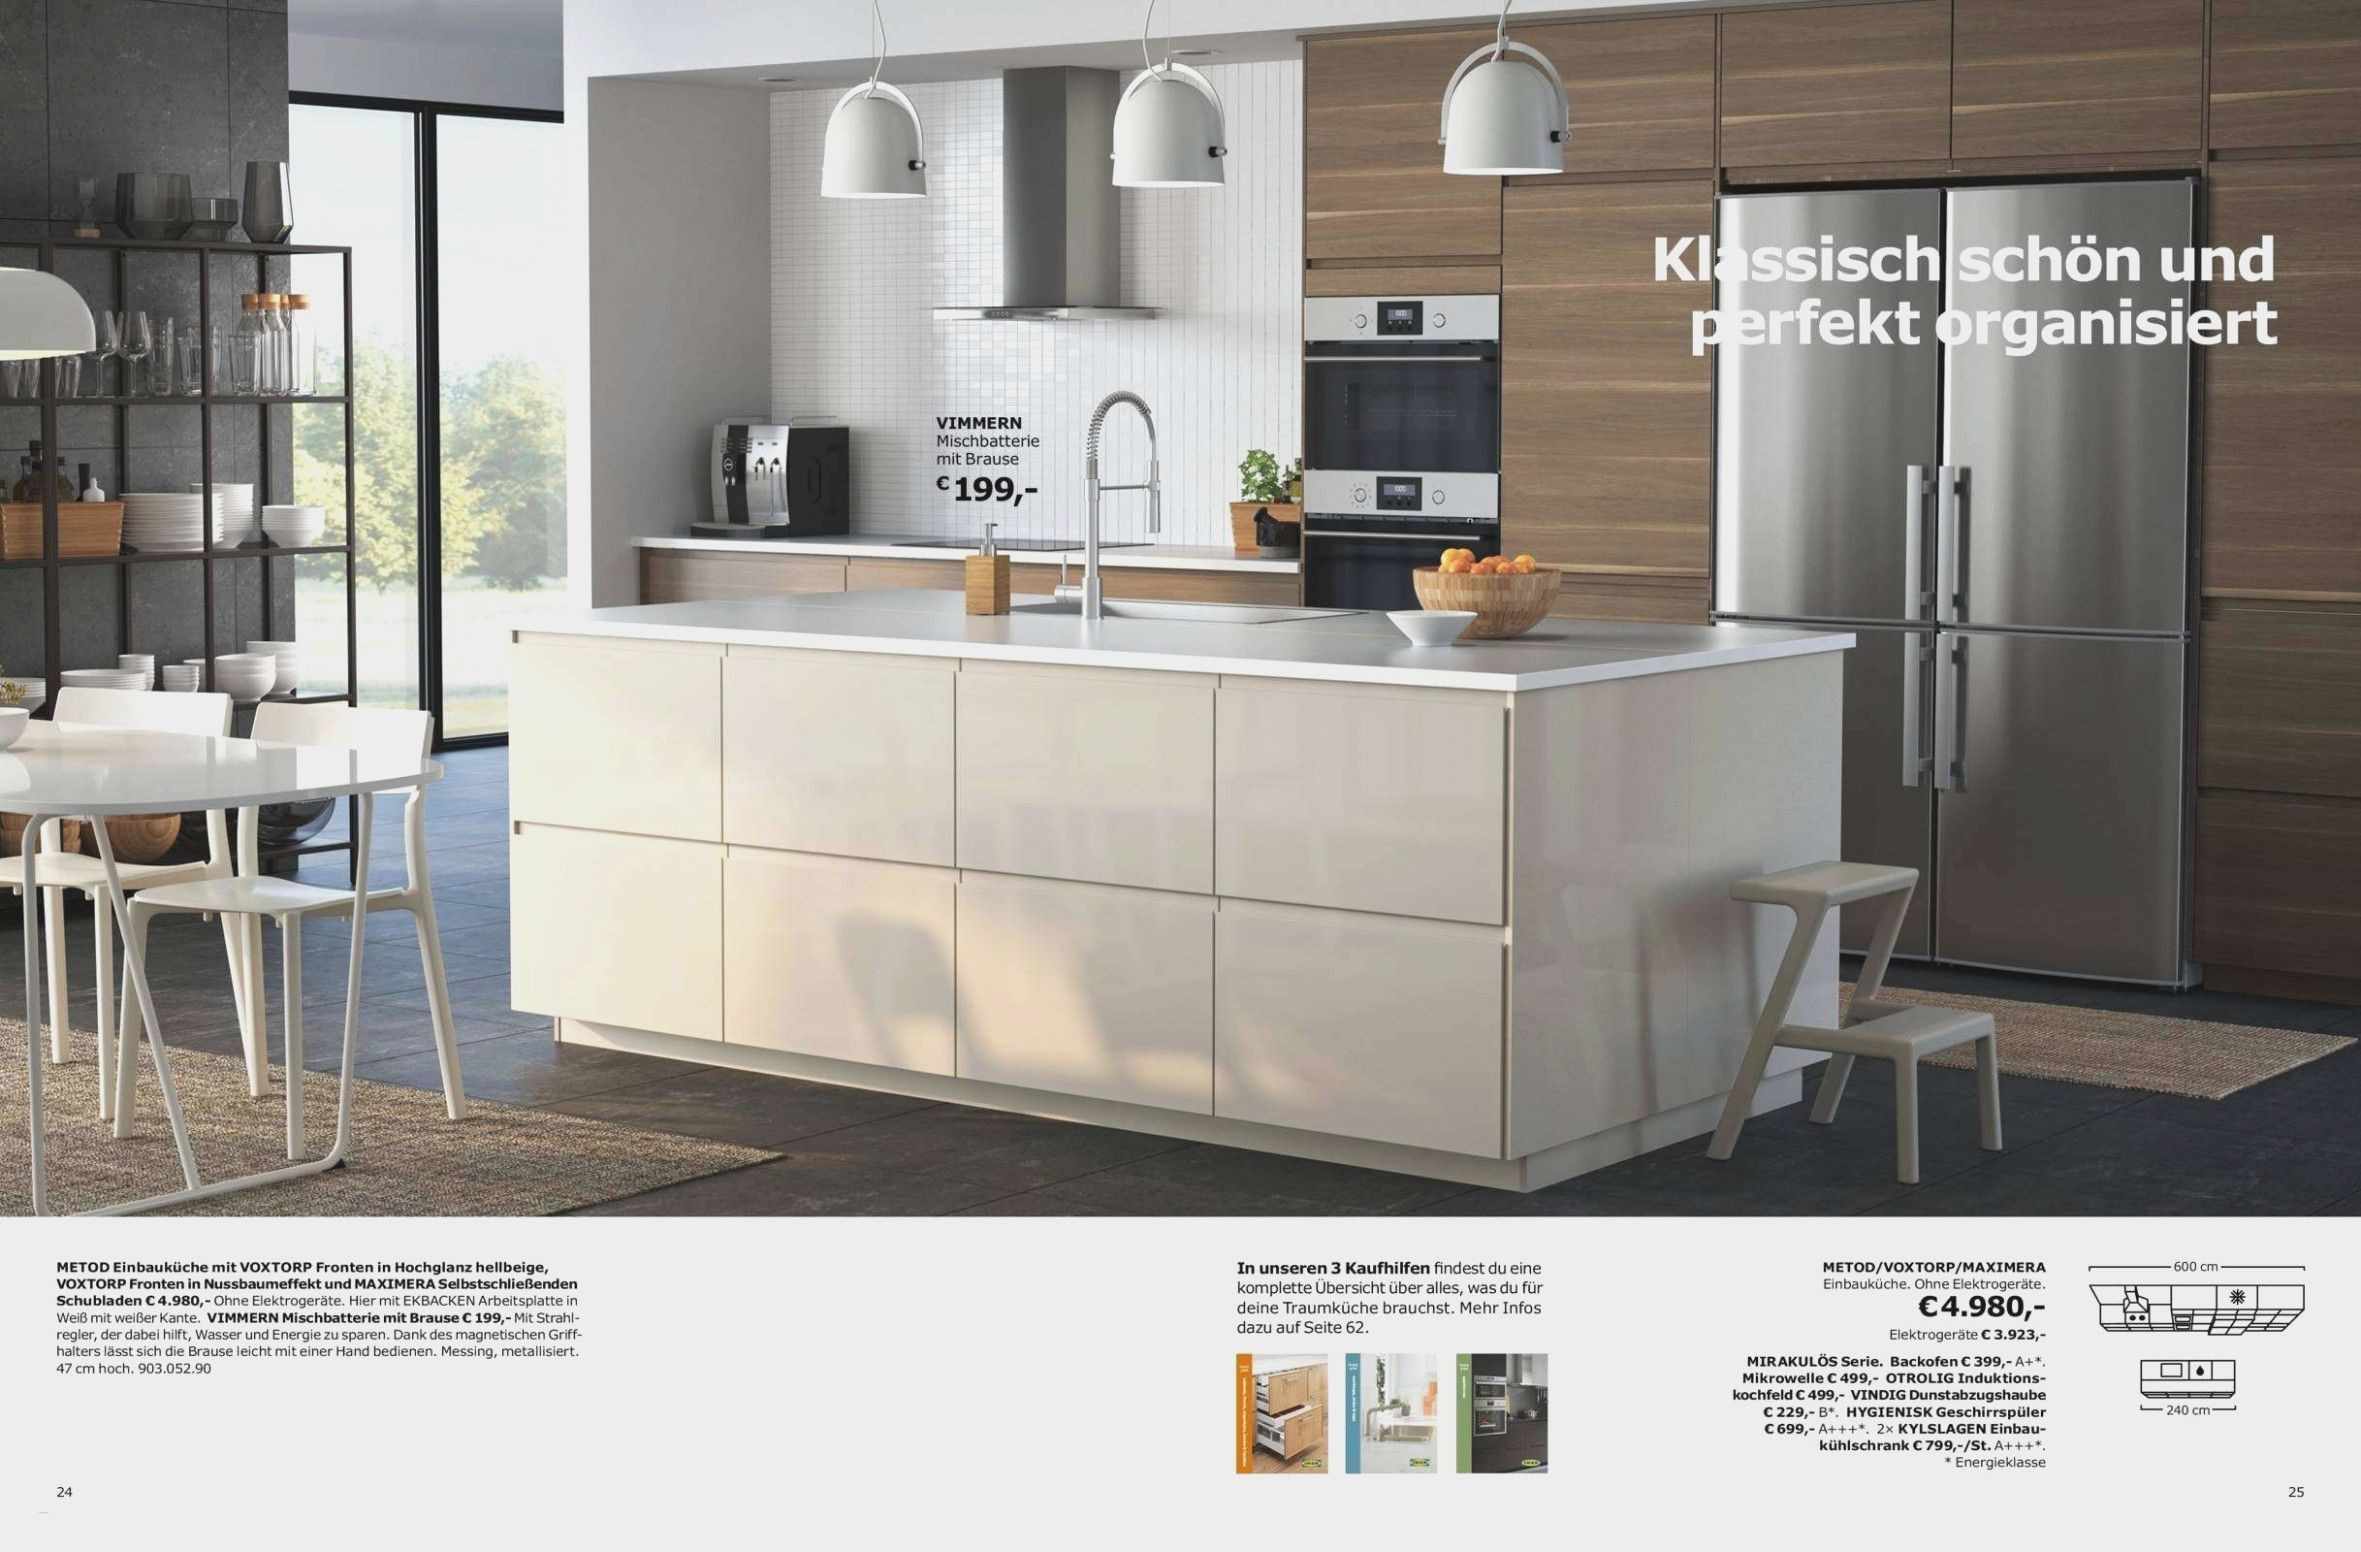 11 Einzigartig Arbeitsplatte Kuche Eckverbindung Kitchen Ikea Luxury Kitchen Decor Ikea Kitchen Cabinets Ikea Kitchen Planning